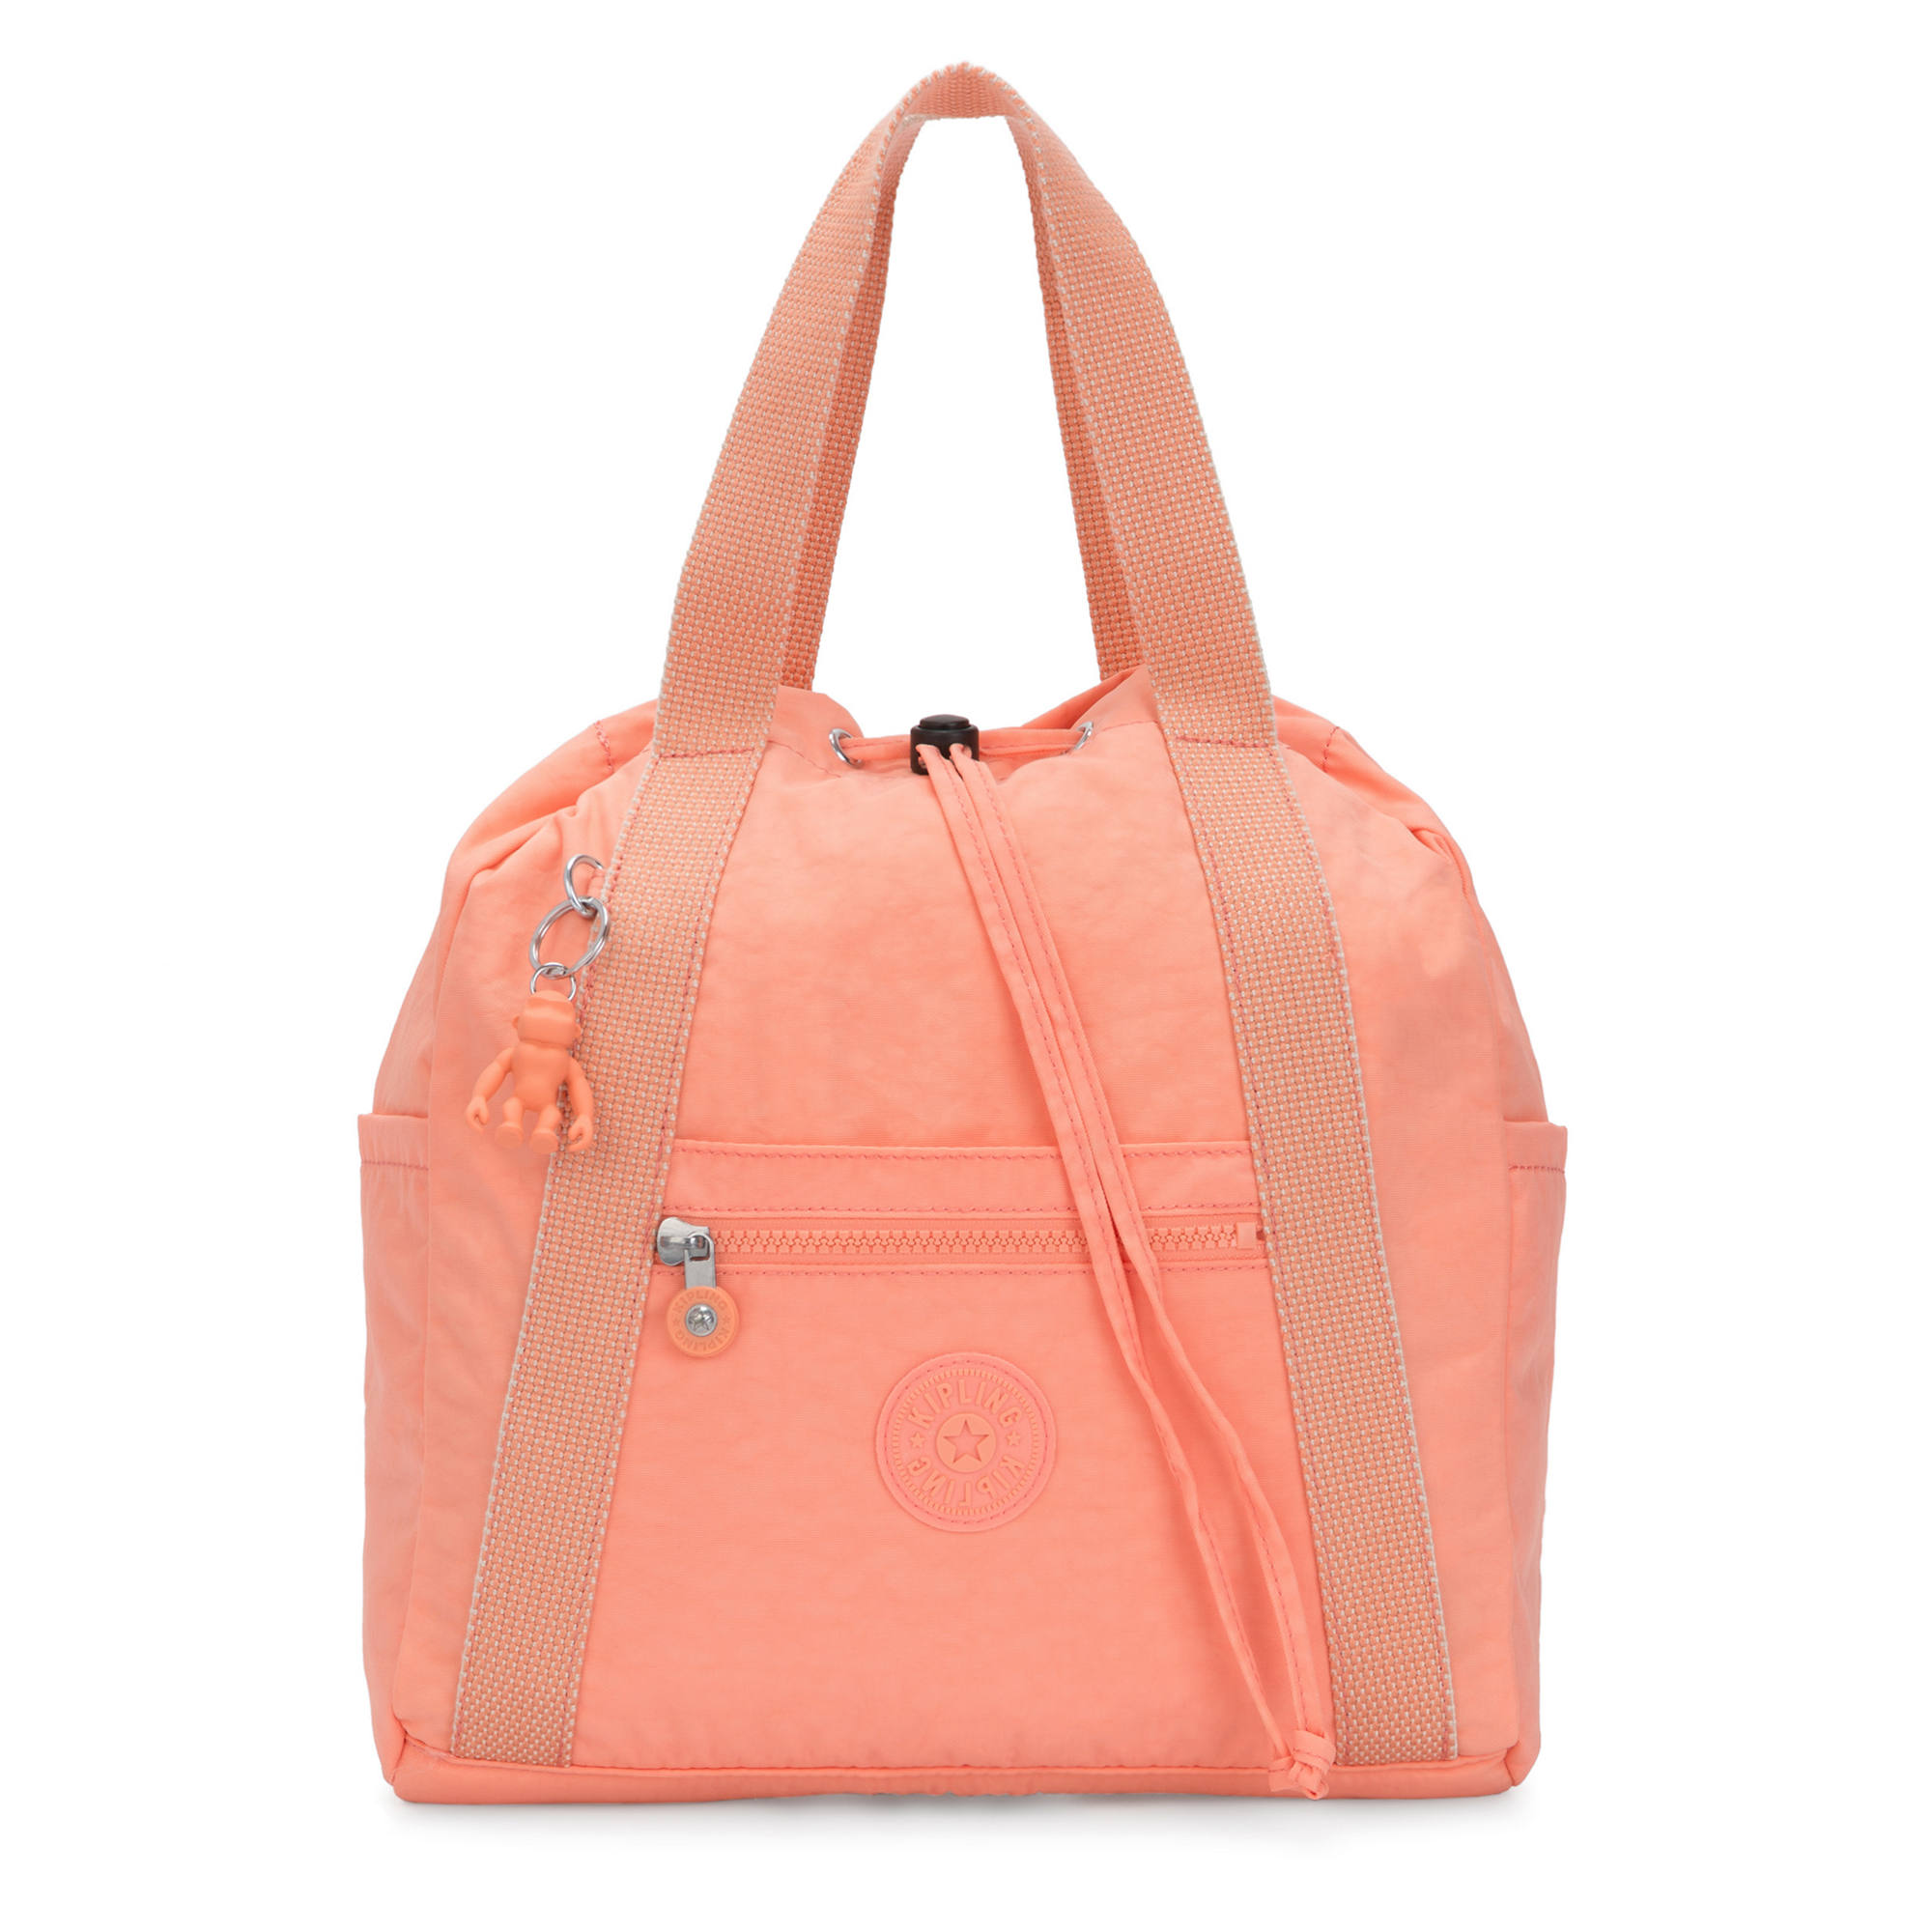 Art Small Tote Backpack,Peachy Coral,large-zoomed